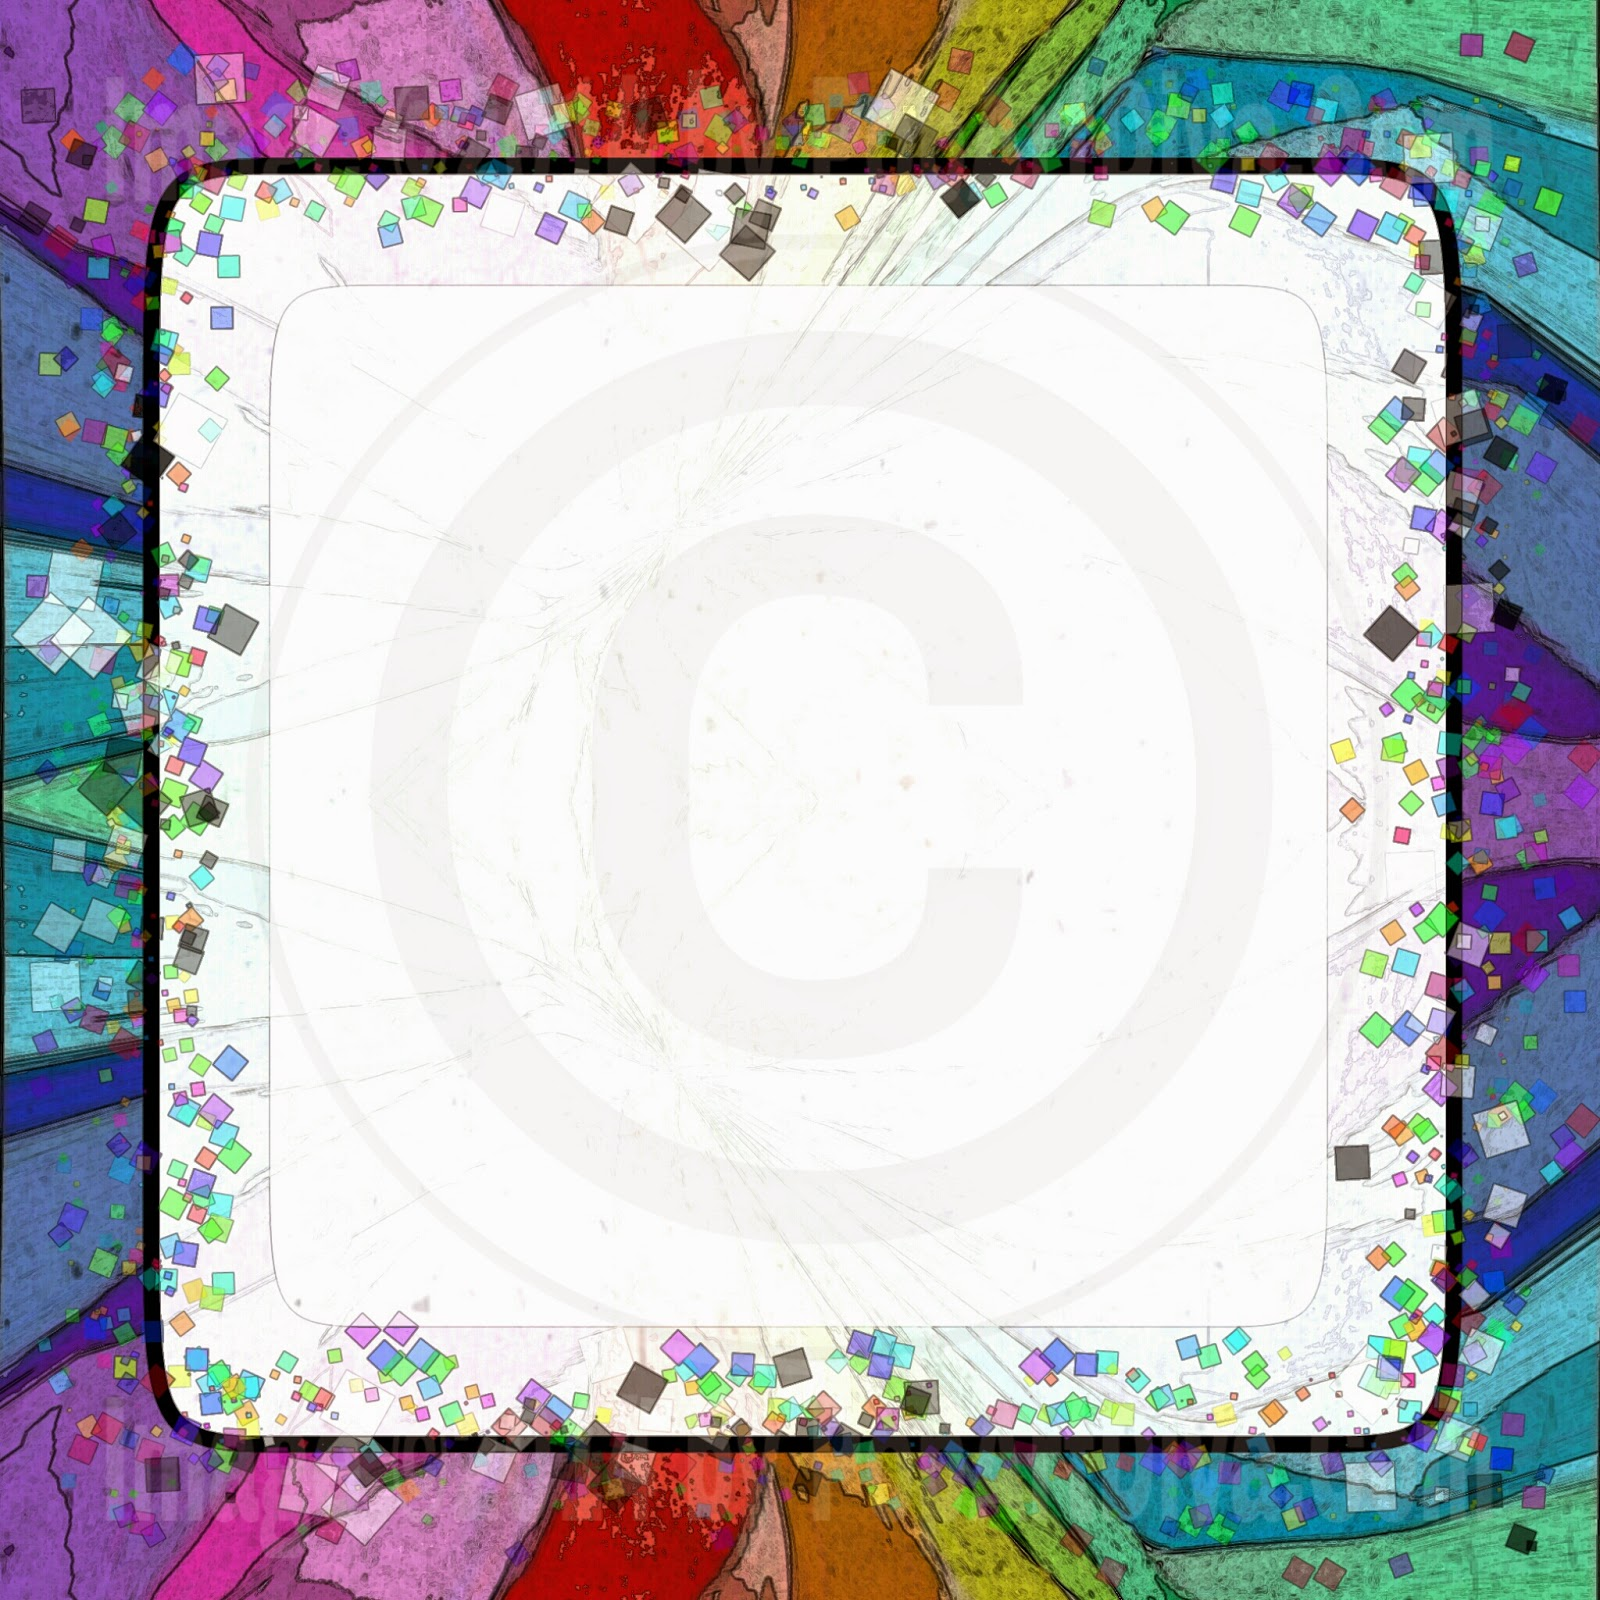 http://store.payloadz.com/details/2084283-photos-and-images-clip-art-kaleidoscope-square-frame-border-web-graphic.html